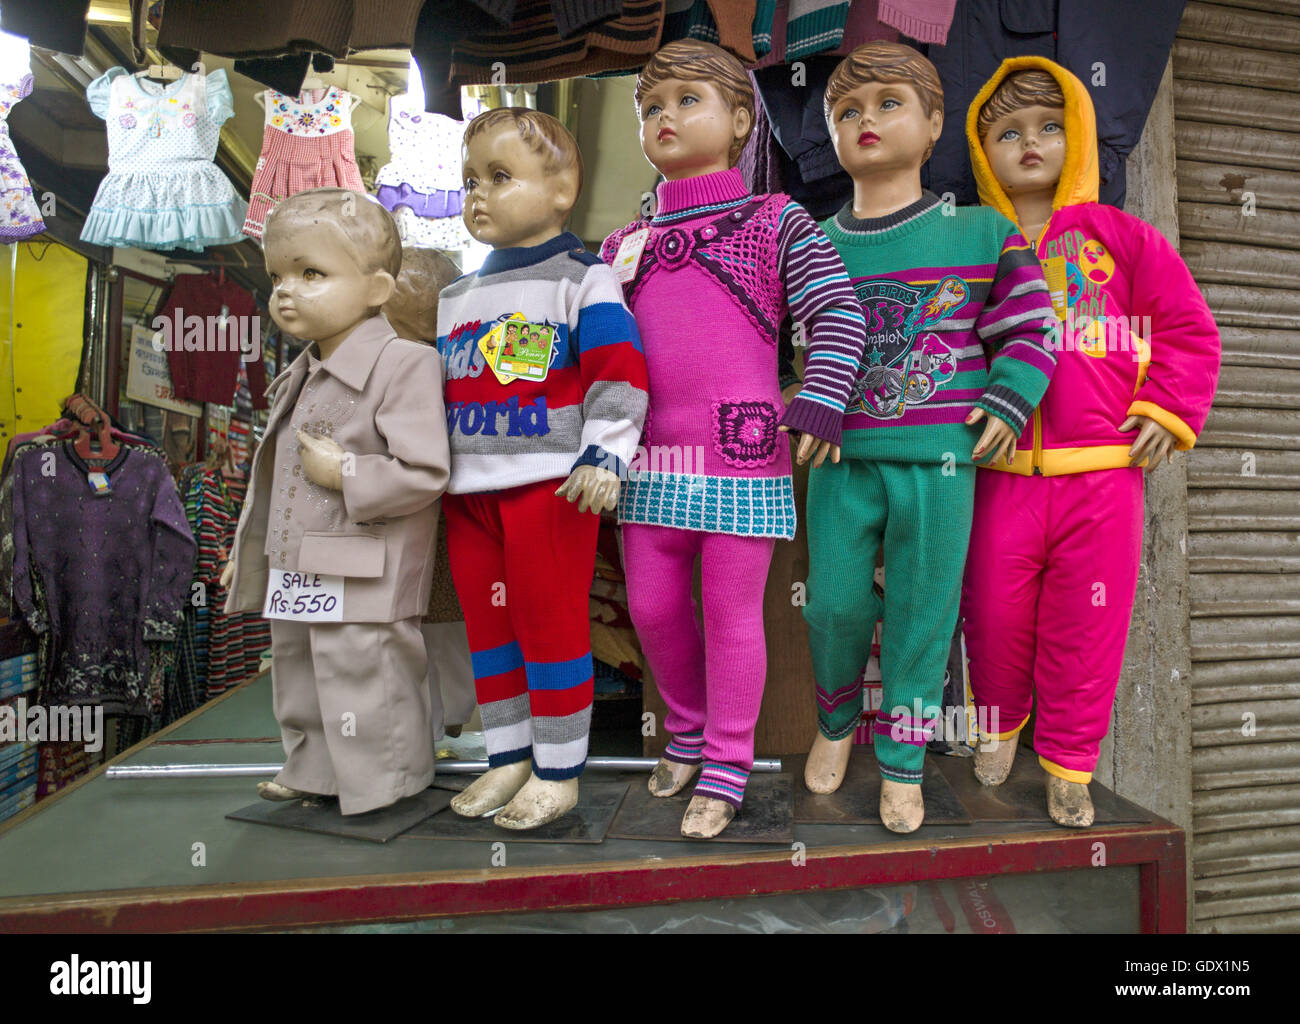 Children's clothing for sale at the Chandni Chowk market in New Delhi, India, 2014 - Stock Image